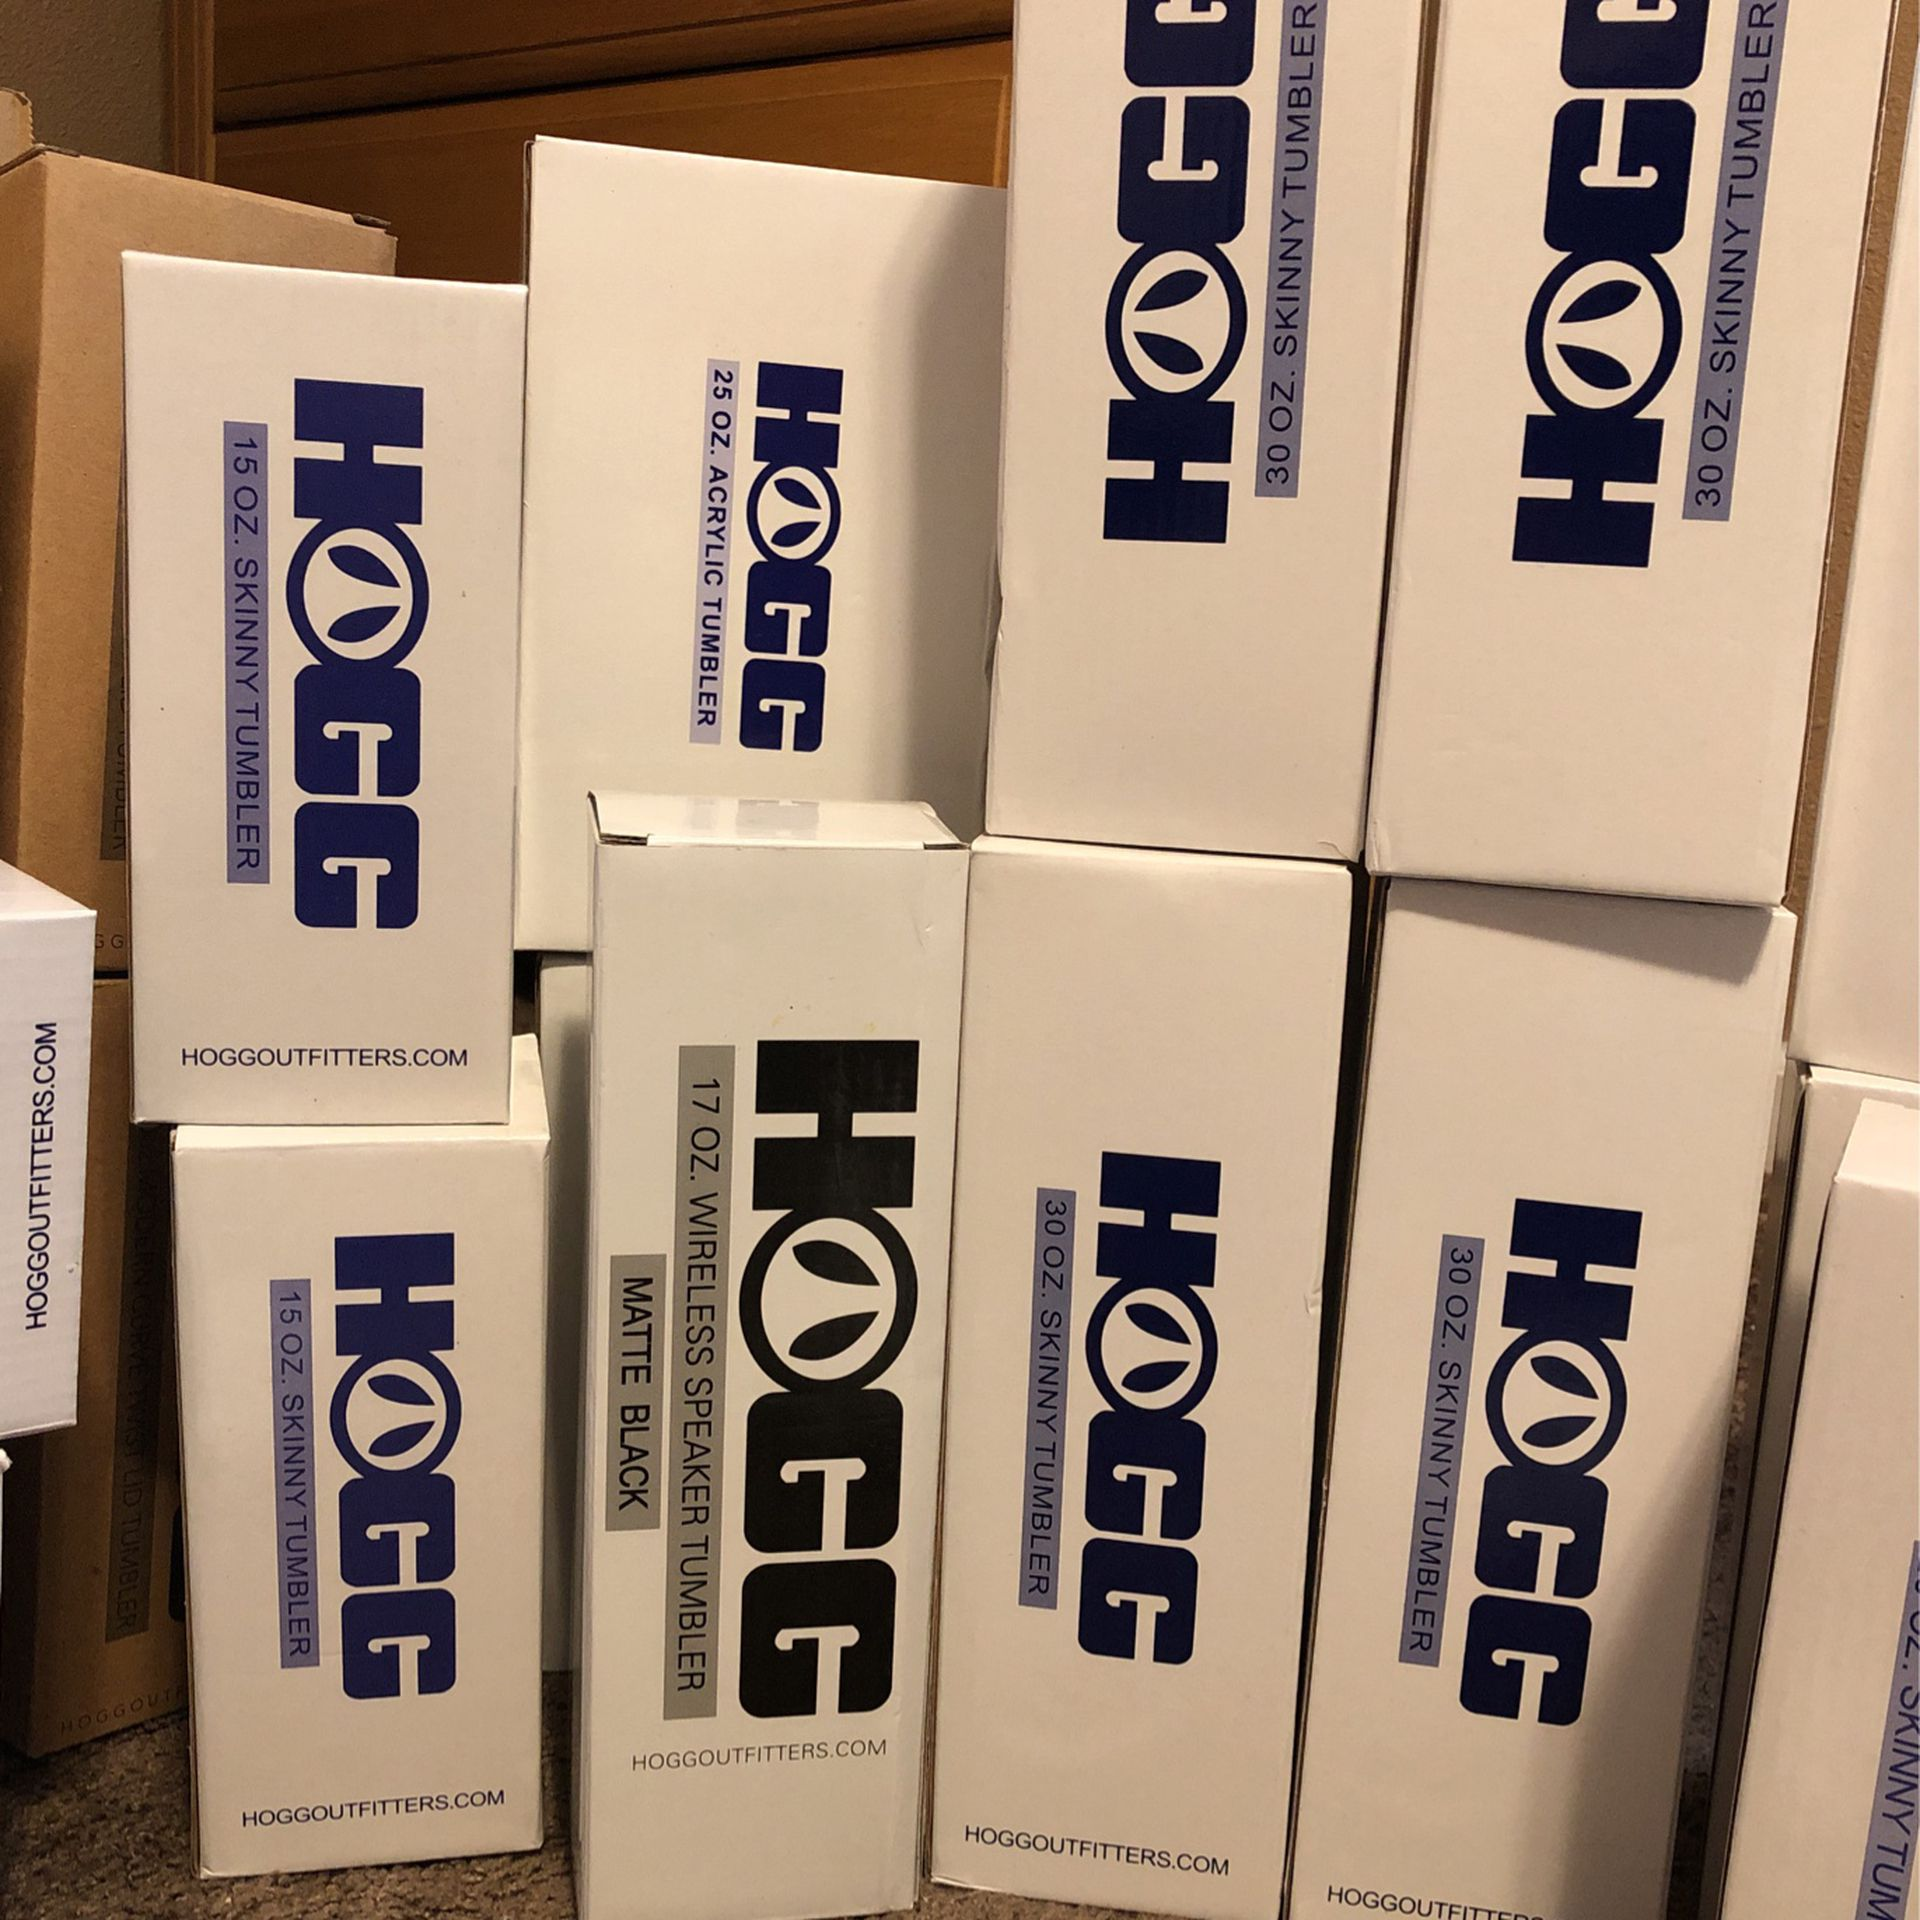 Box Of Hogg Brand Stainless Steel Cups